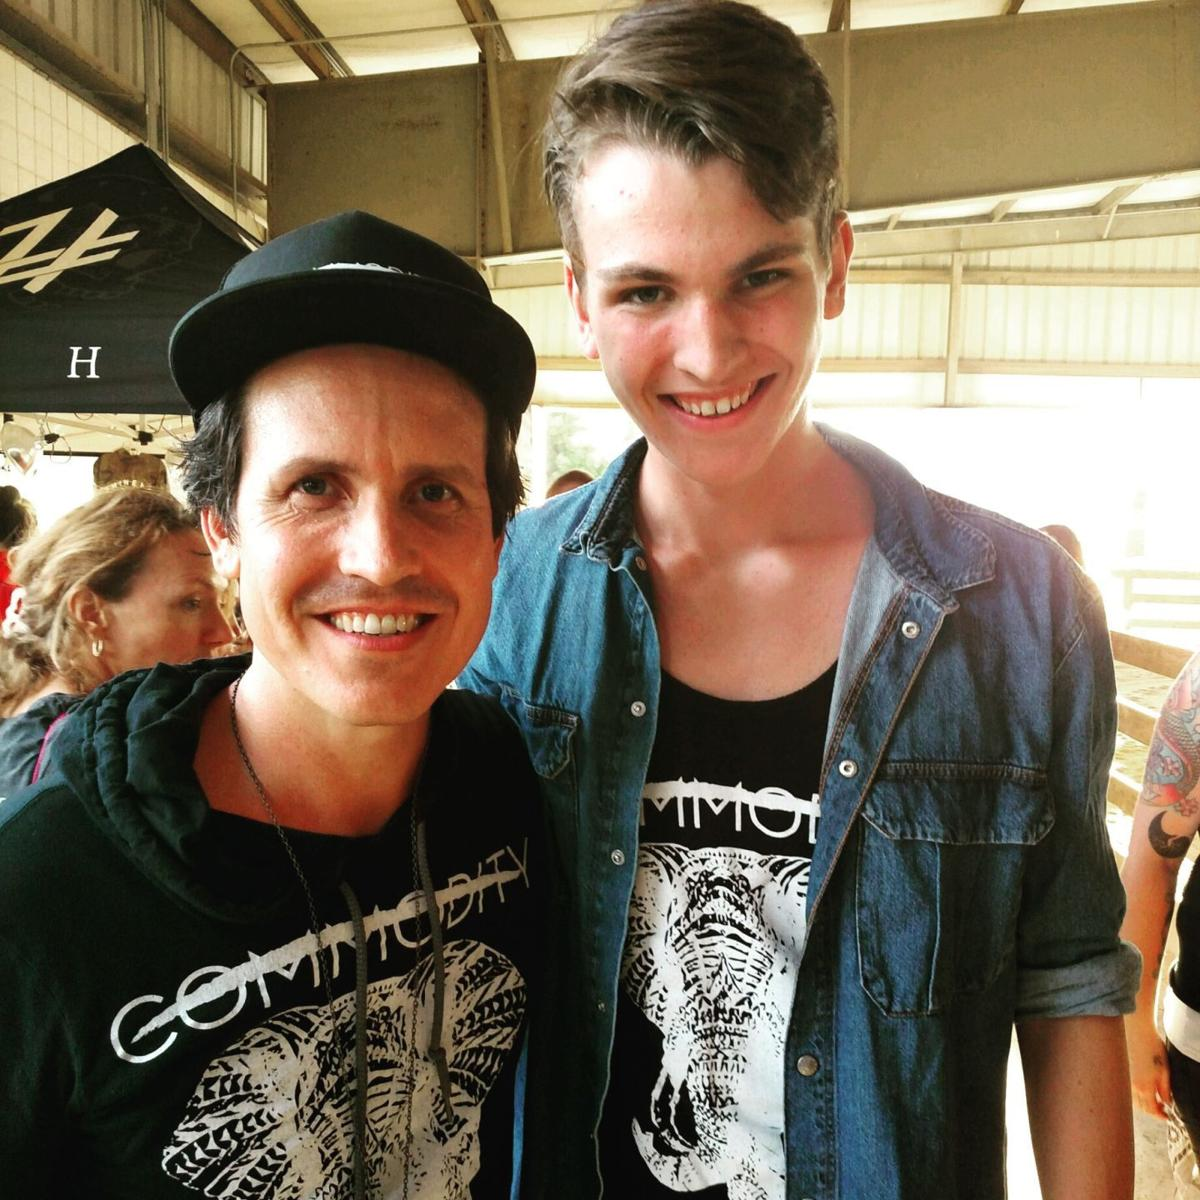 Cameron Schroeder and David Zach of Remedy Drive